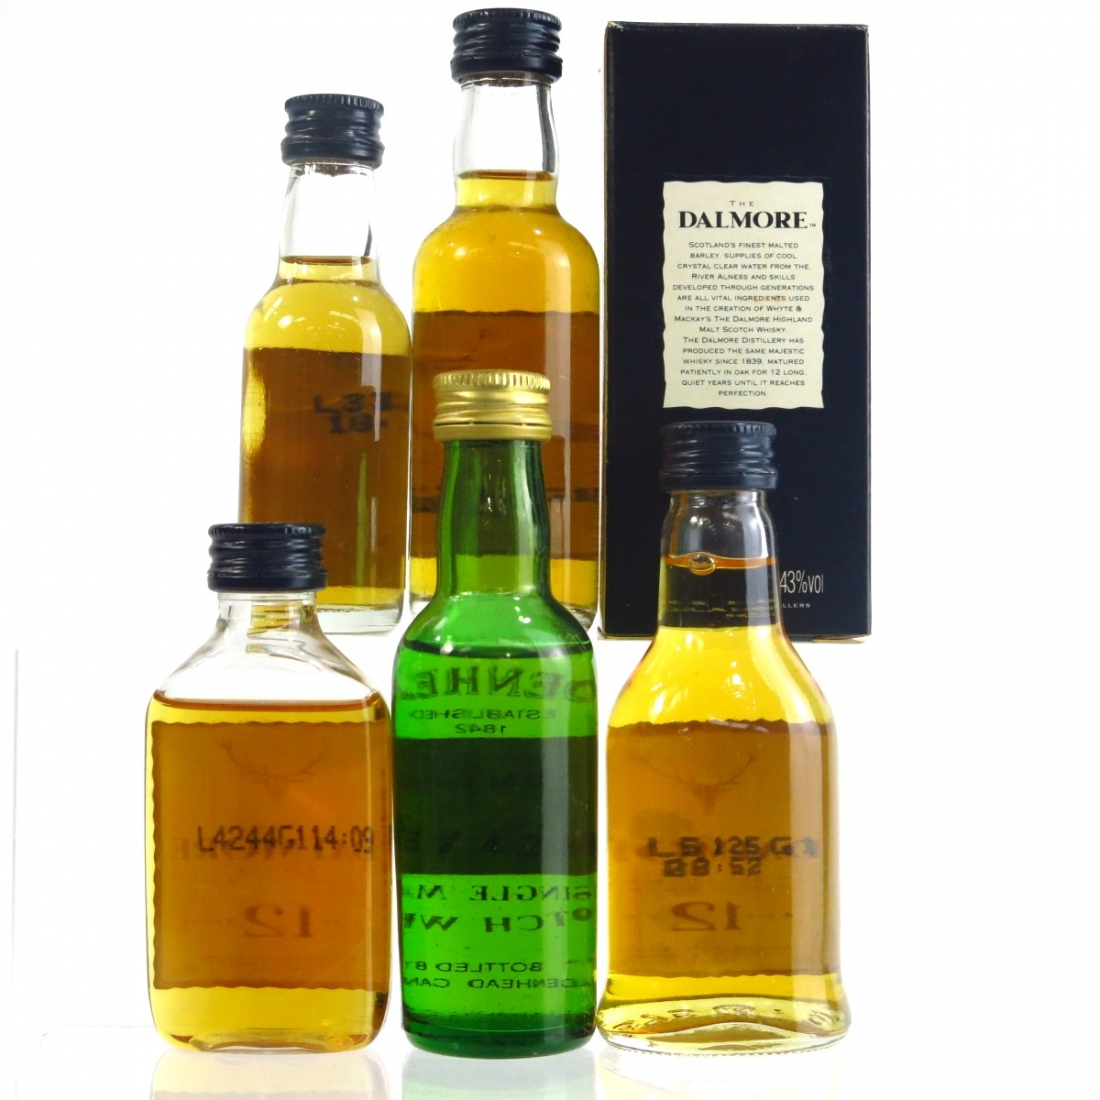 Dalmore Single Malt Selection 5 x 5cl / Including 1963 Cadenhead's 30 Year Old